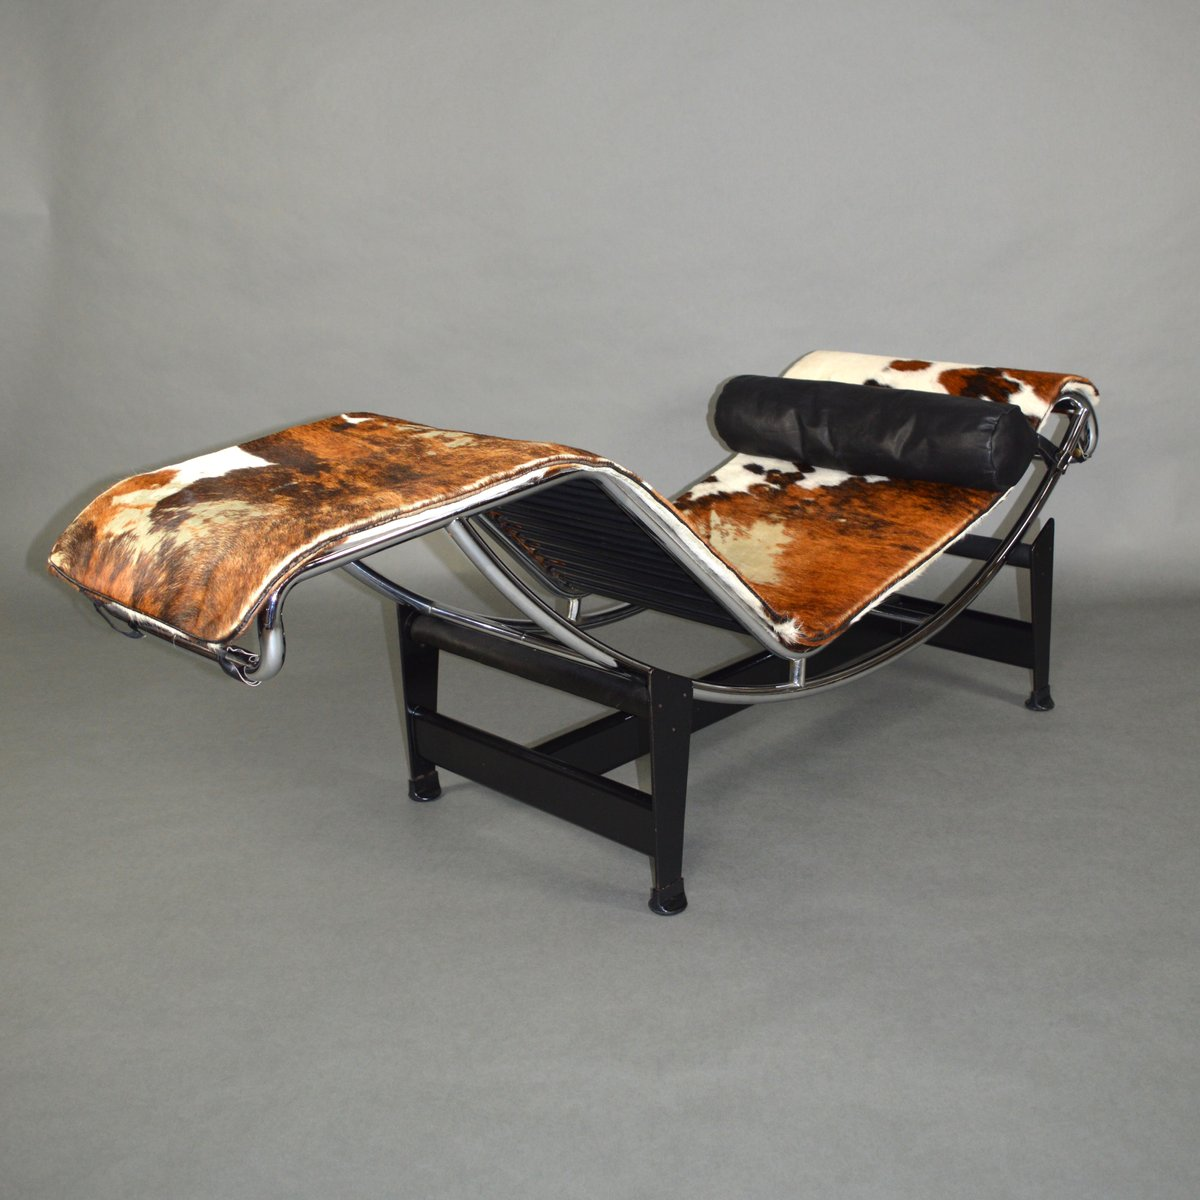 Lc4 Chaise Lounge By Le Corbusier For Cassina 1960s For